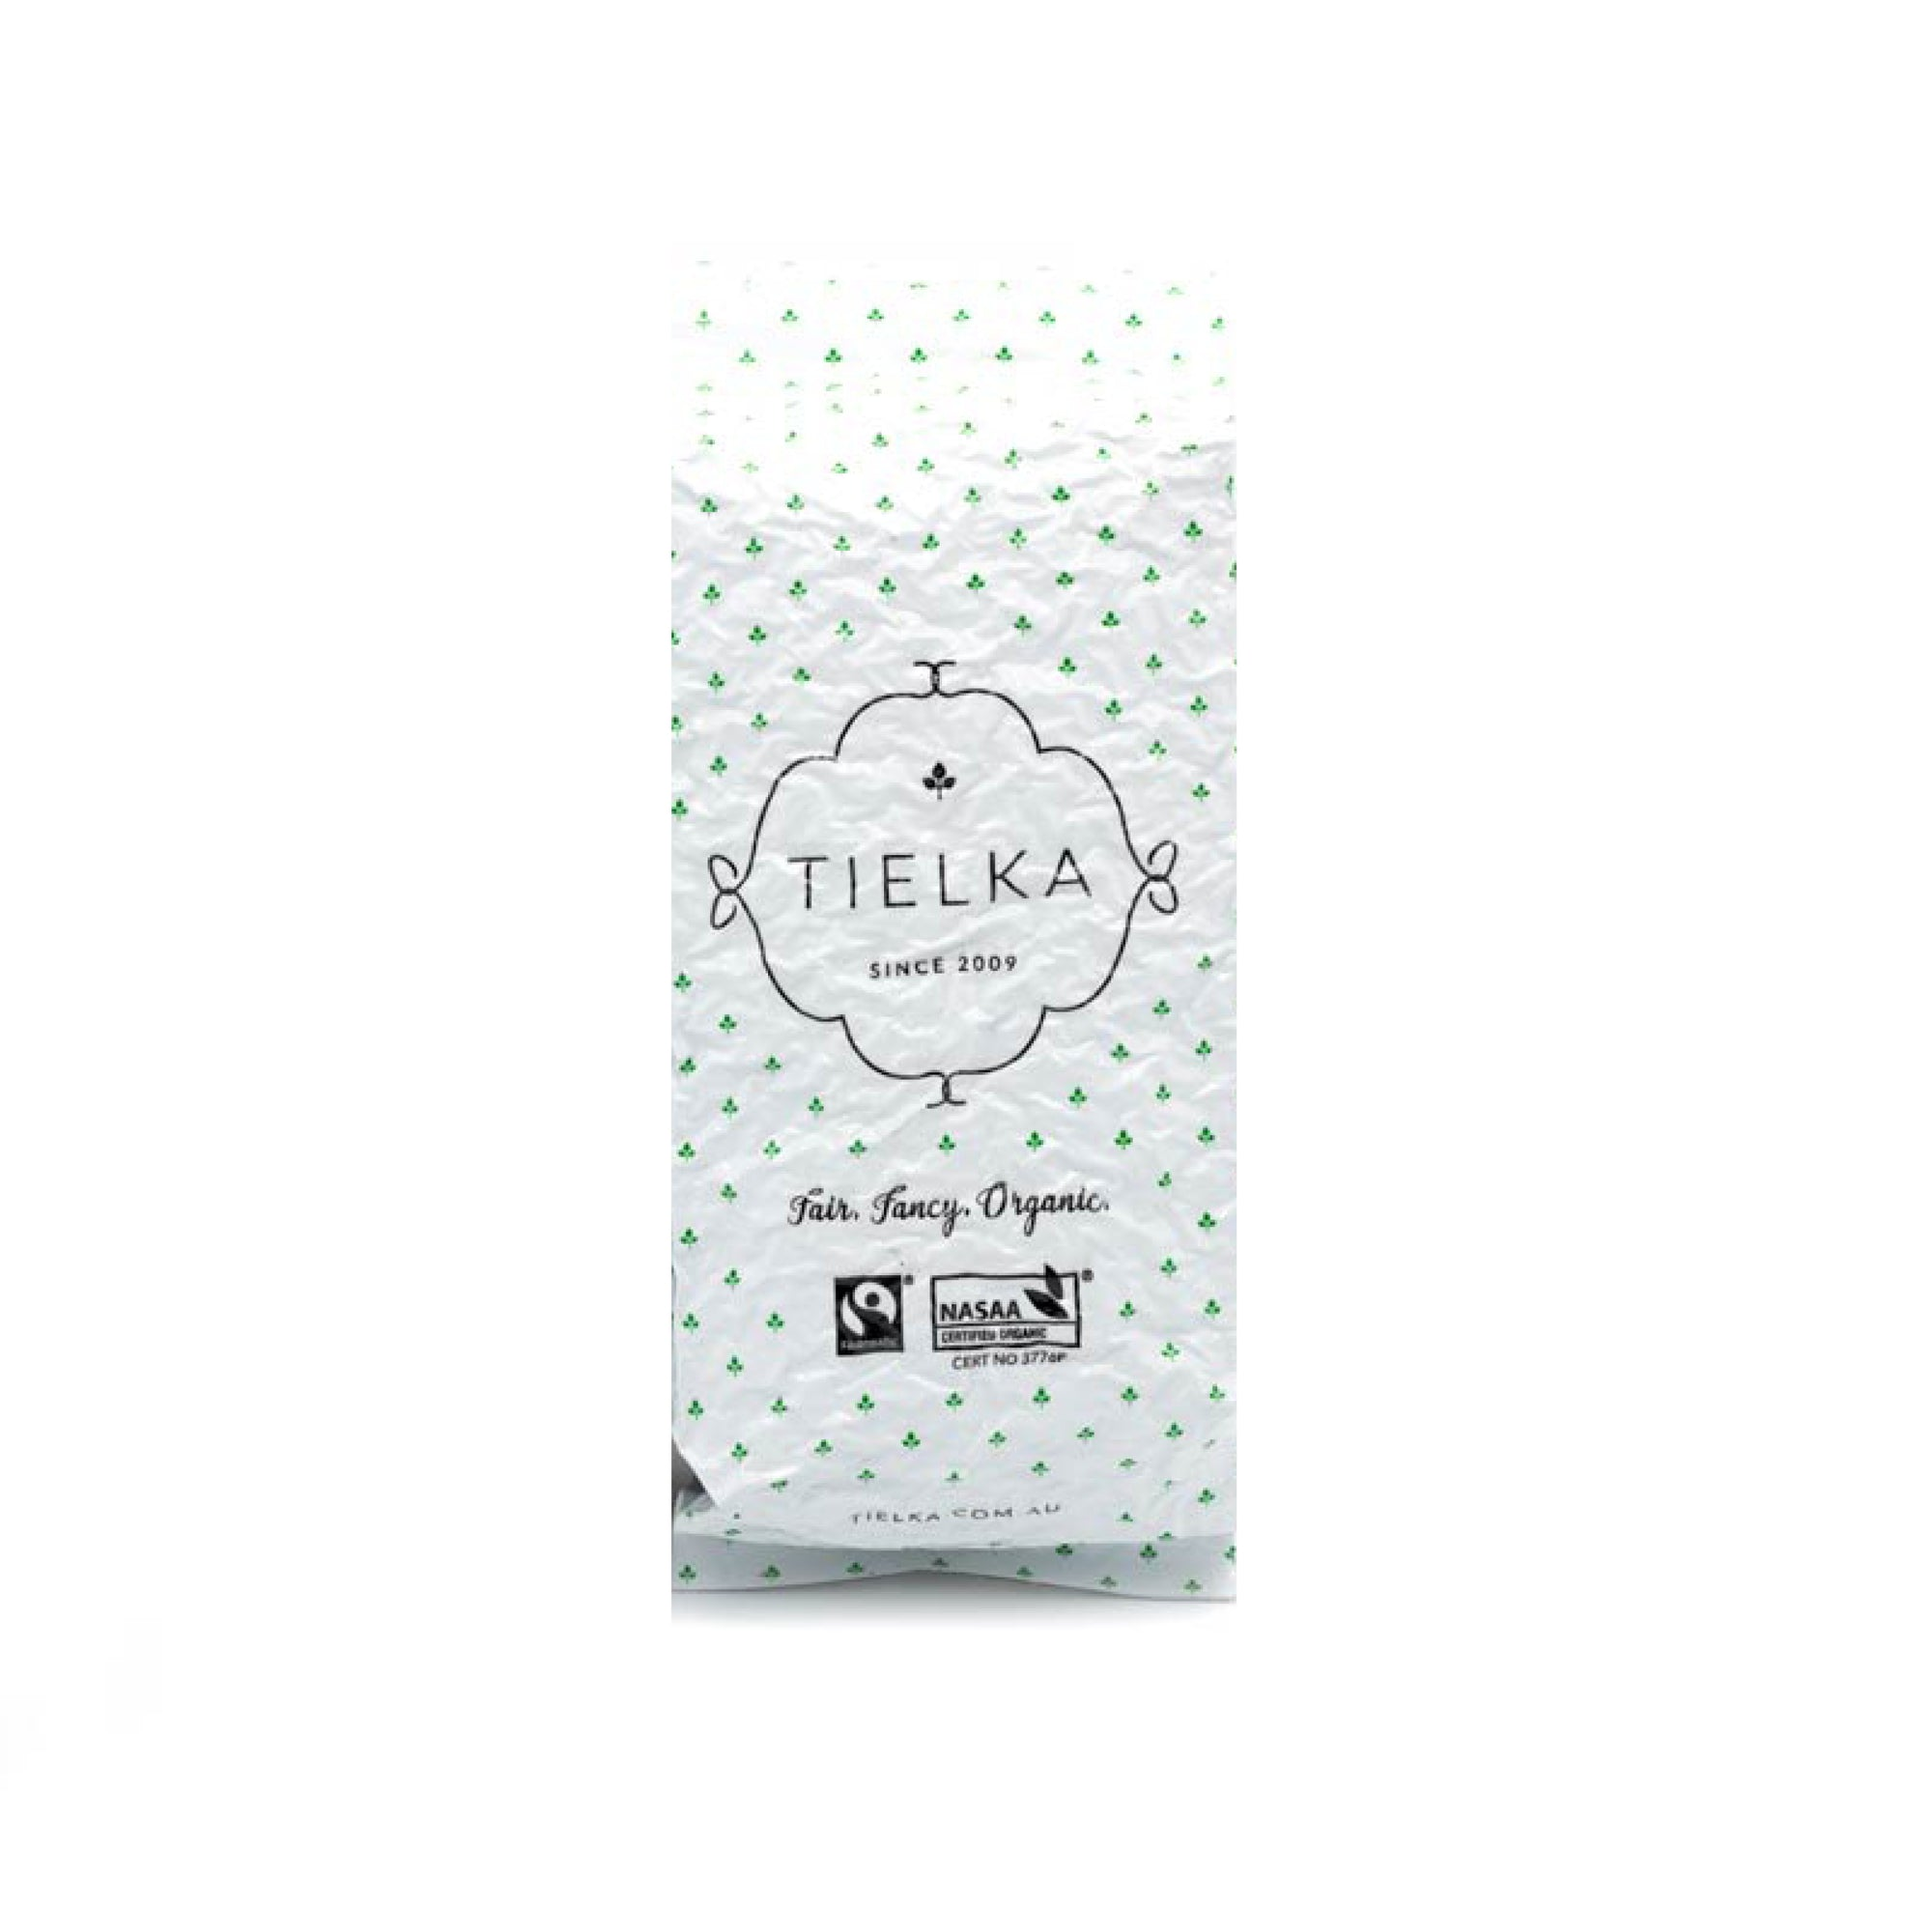 Fairtrade Organic Loose Leaf Earl Royale Black Tea by Tielka